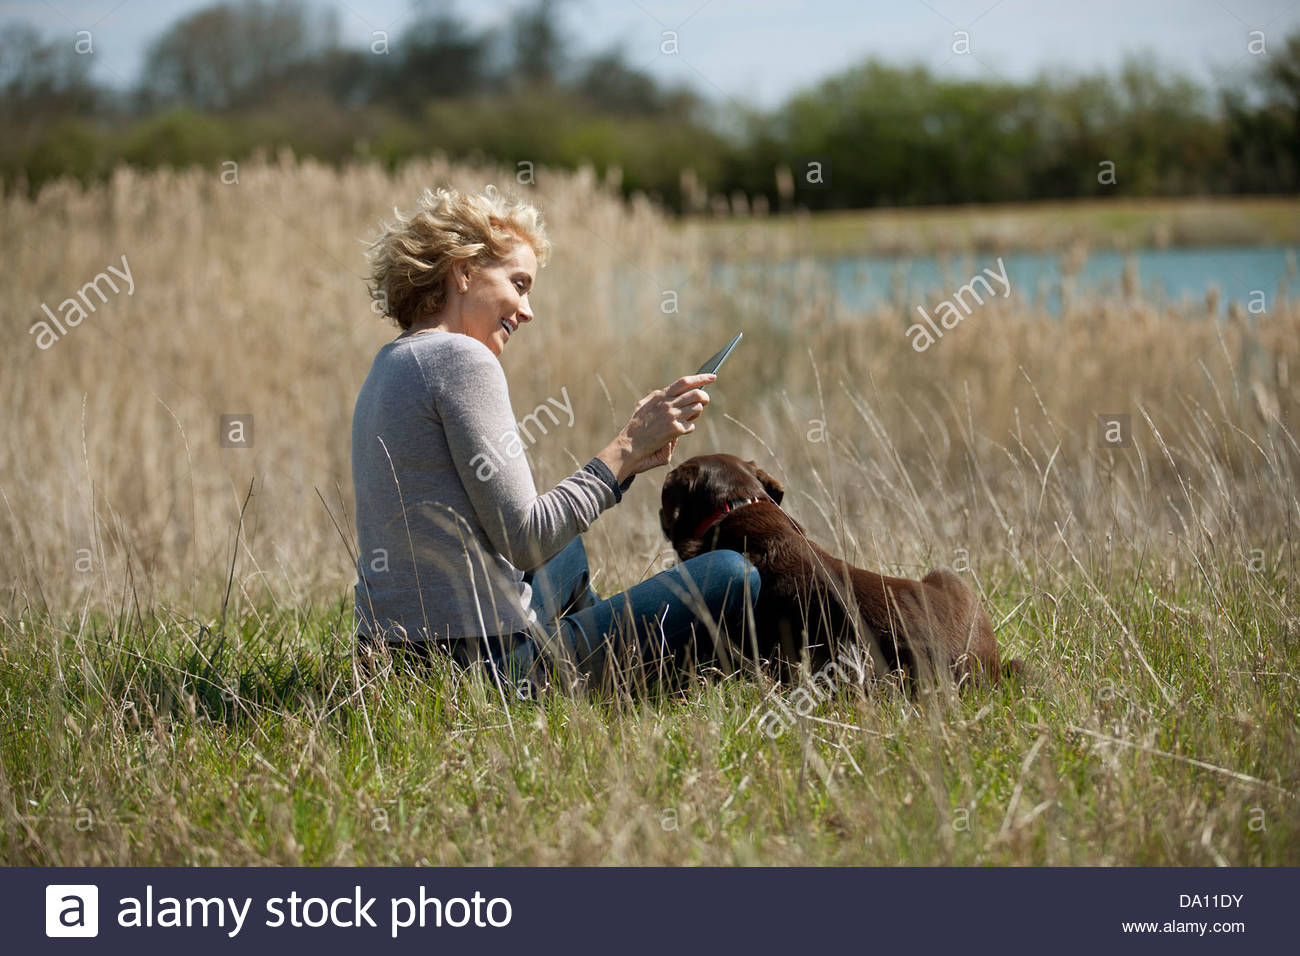 A mature woman sitting in long grass with her dog, looking at a digital tablet - Stock Image